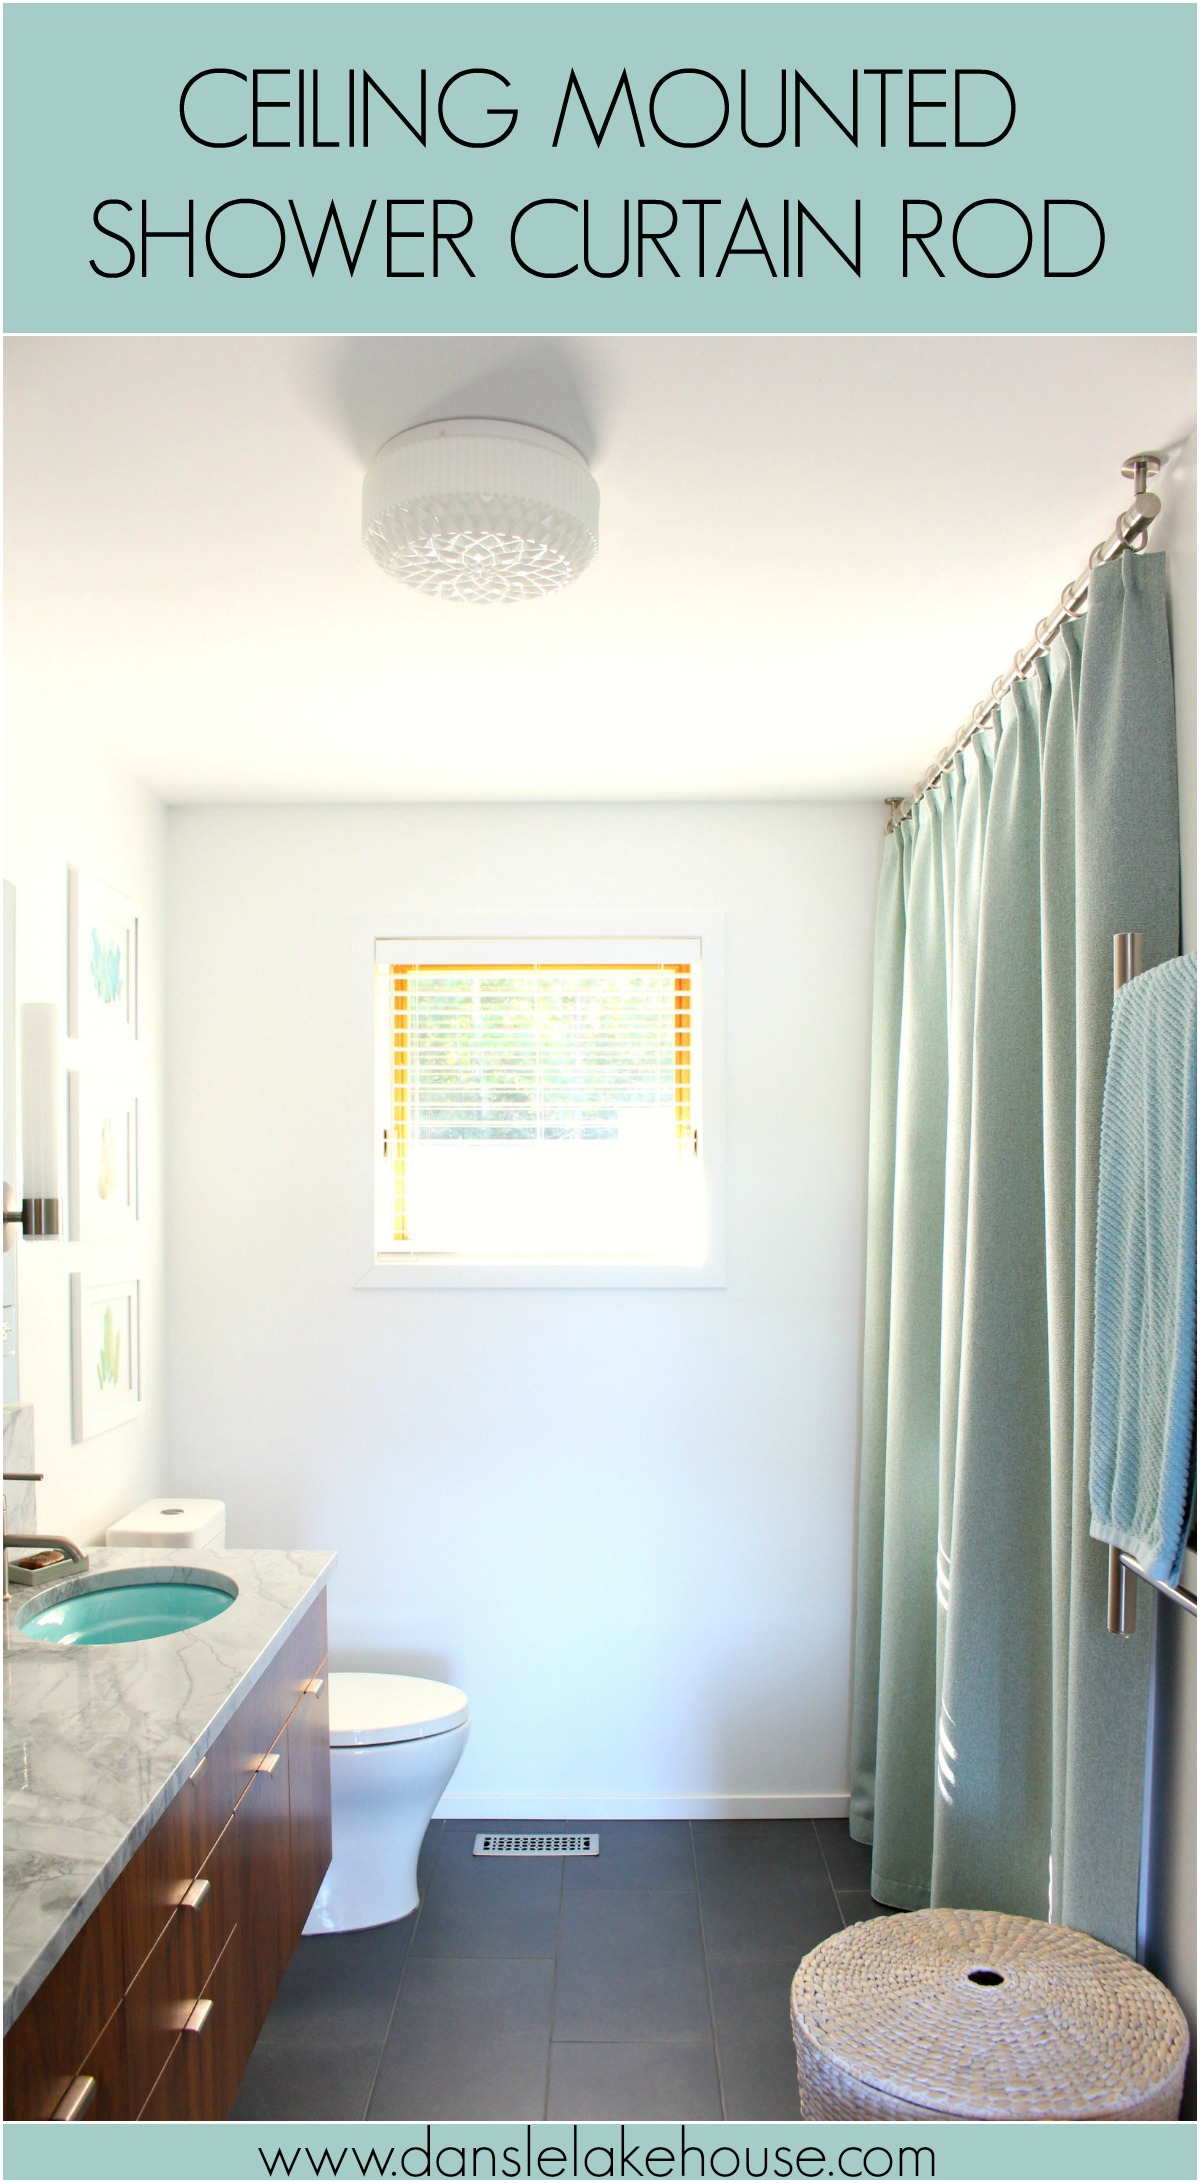 Bathroom Update: Ceiling Mounted Shower Curtain Rod + Turquoise Tweed Pleated Shower Curtain